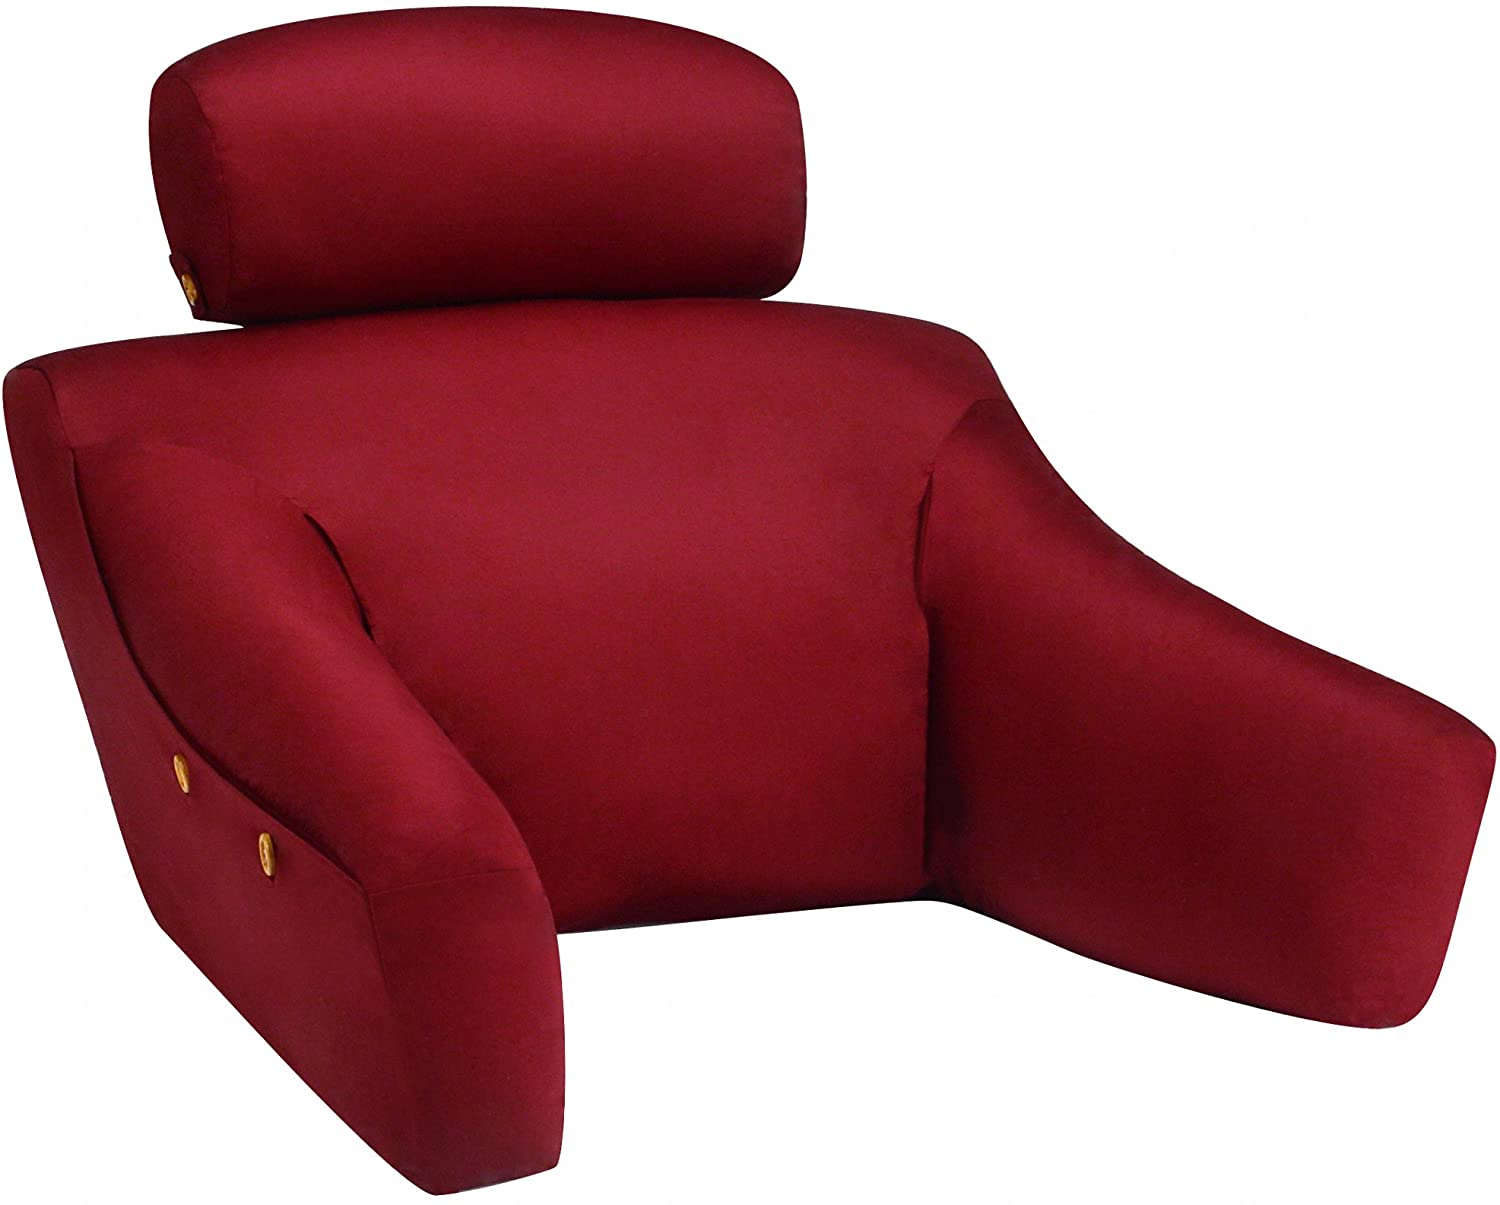 BedLounge Hypoallergenic - Regular Size - Burgundy Cotton